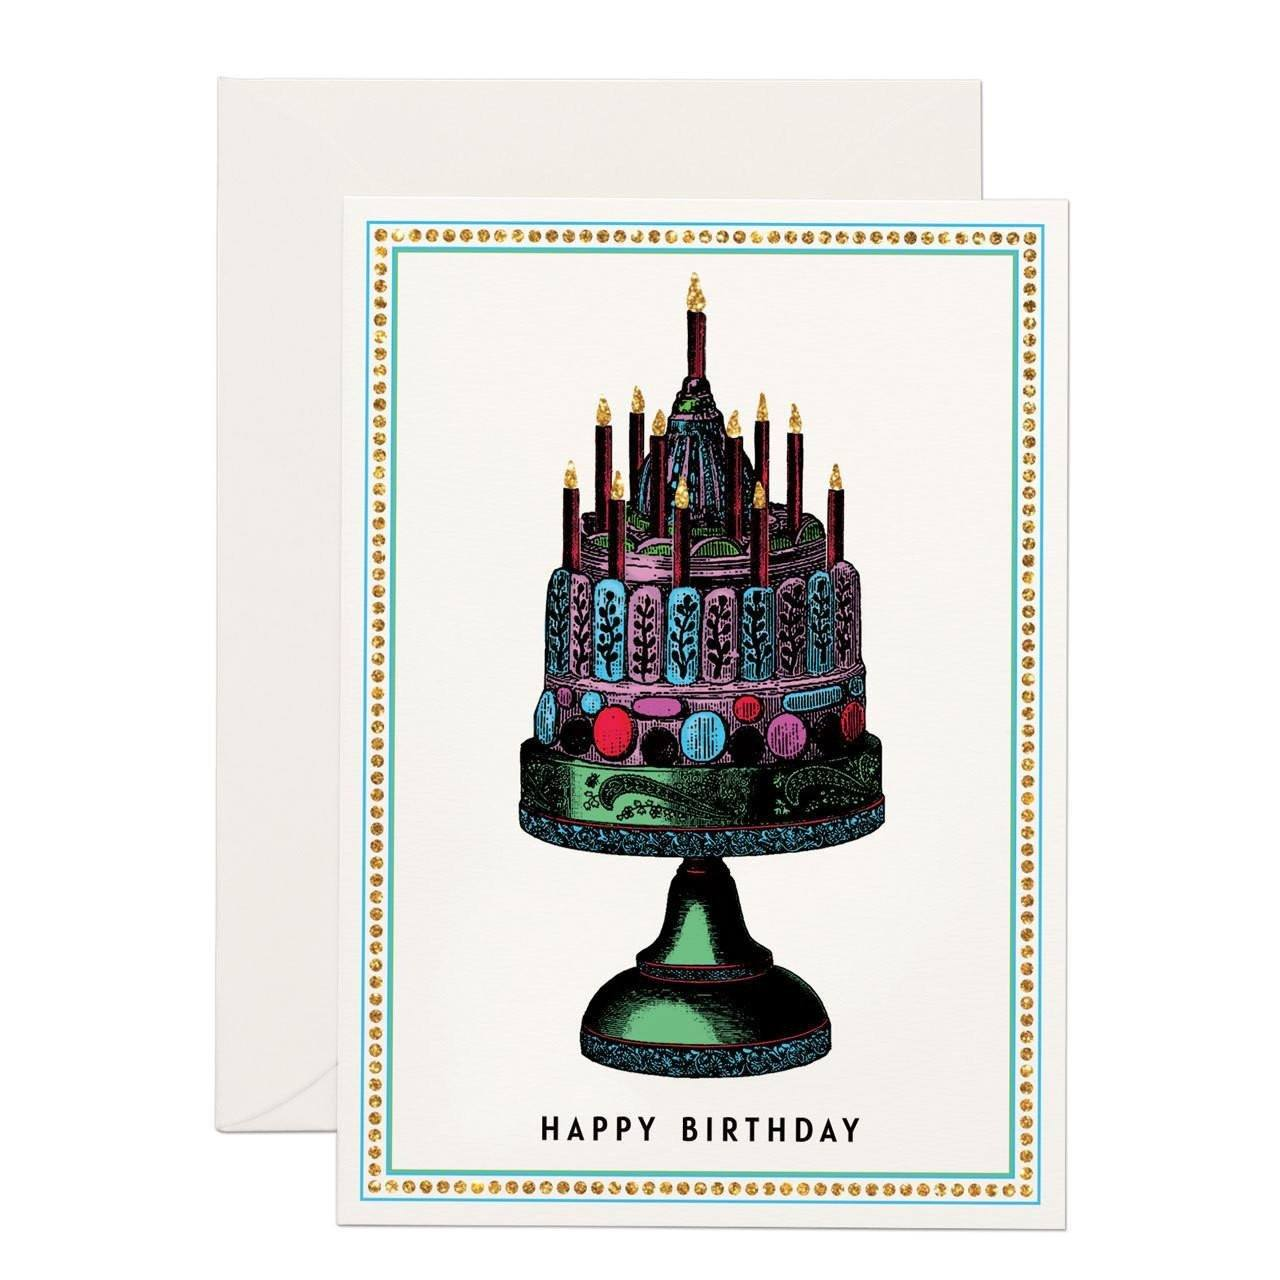 Happy Birthday Cake (SMALL) greeting card - Chase and Wonder - Proudly Made in Britain